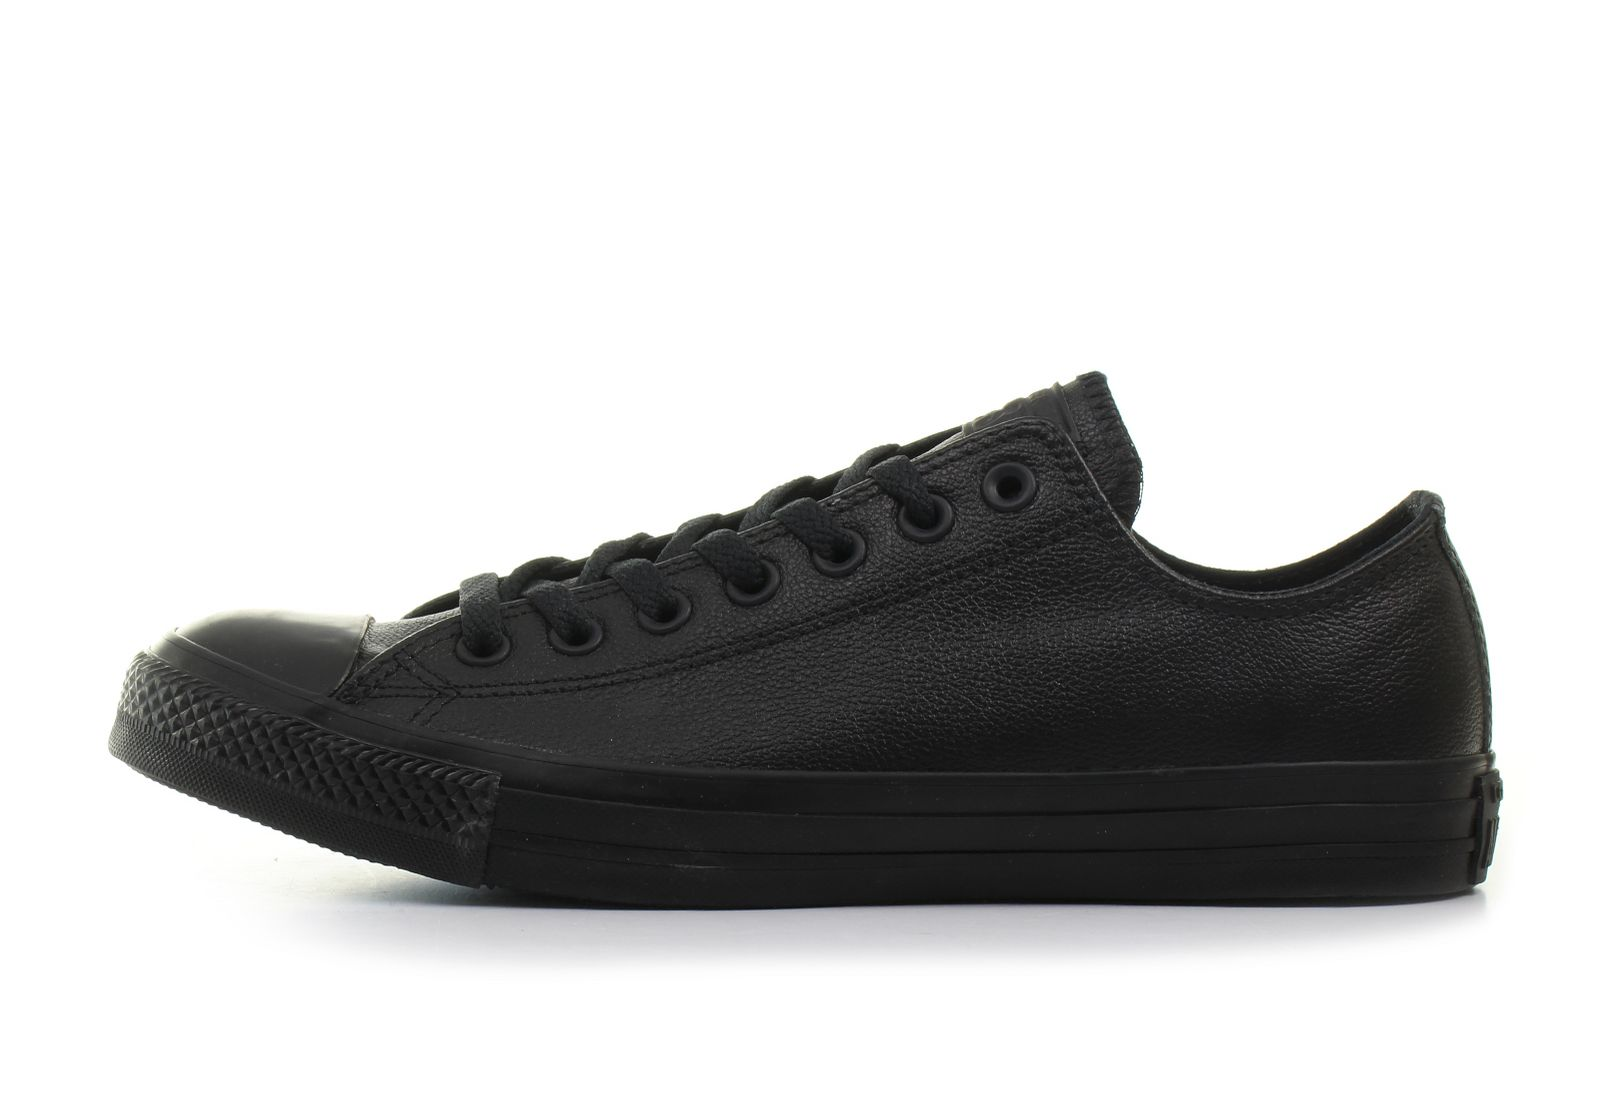 8e130605d47c Converse Sneakers - Chuck Taylor All Star Leather Ox - 135253C ...